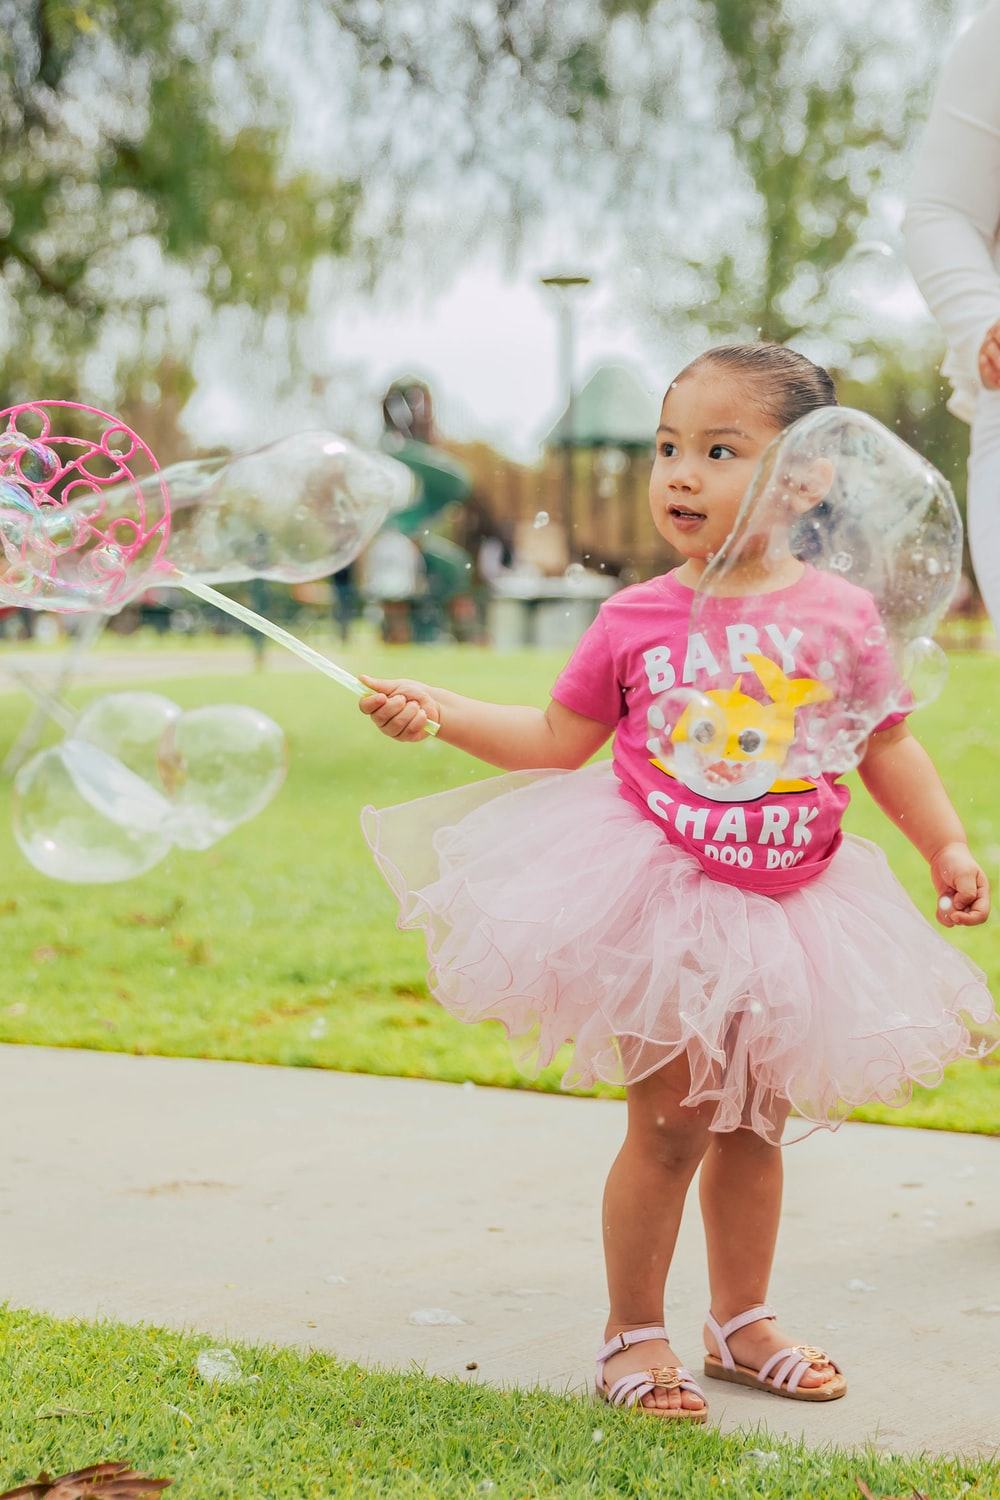 girl playing bubbles during daytime